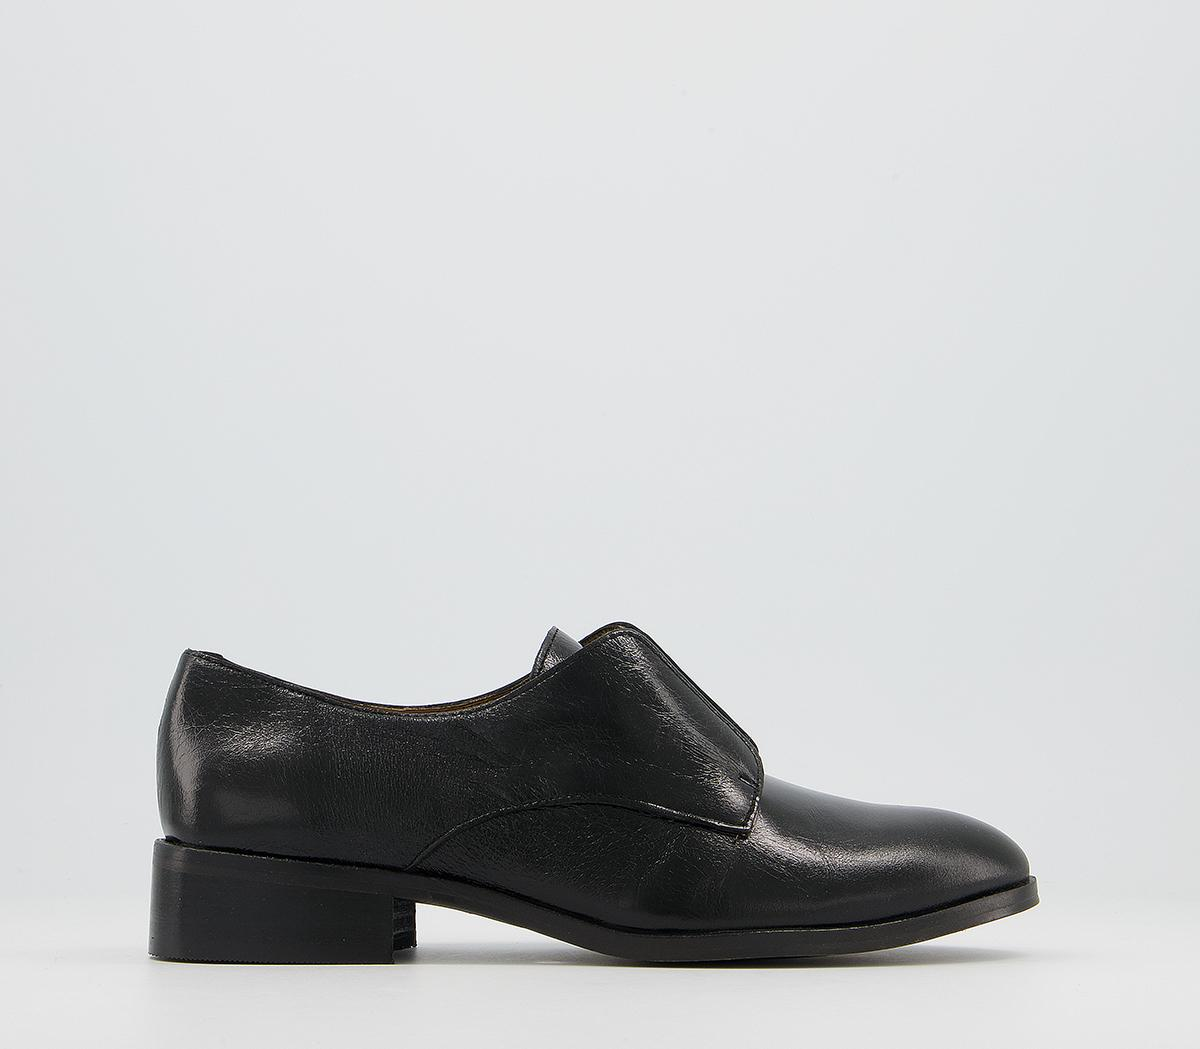 Firm Feature Slip On Flats